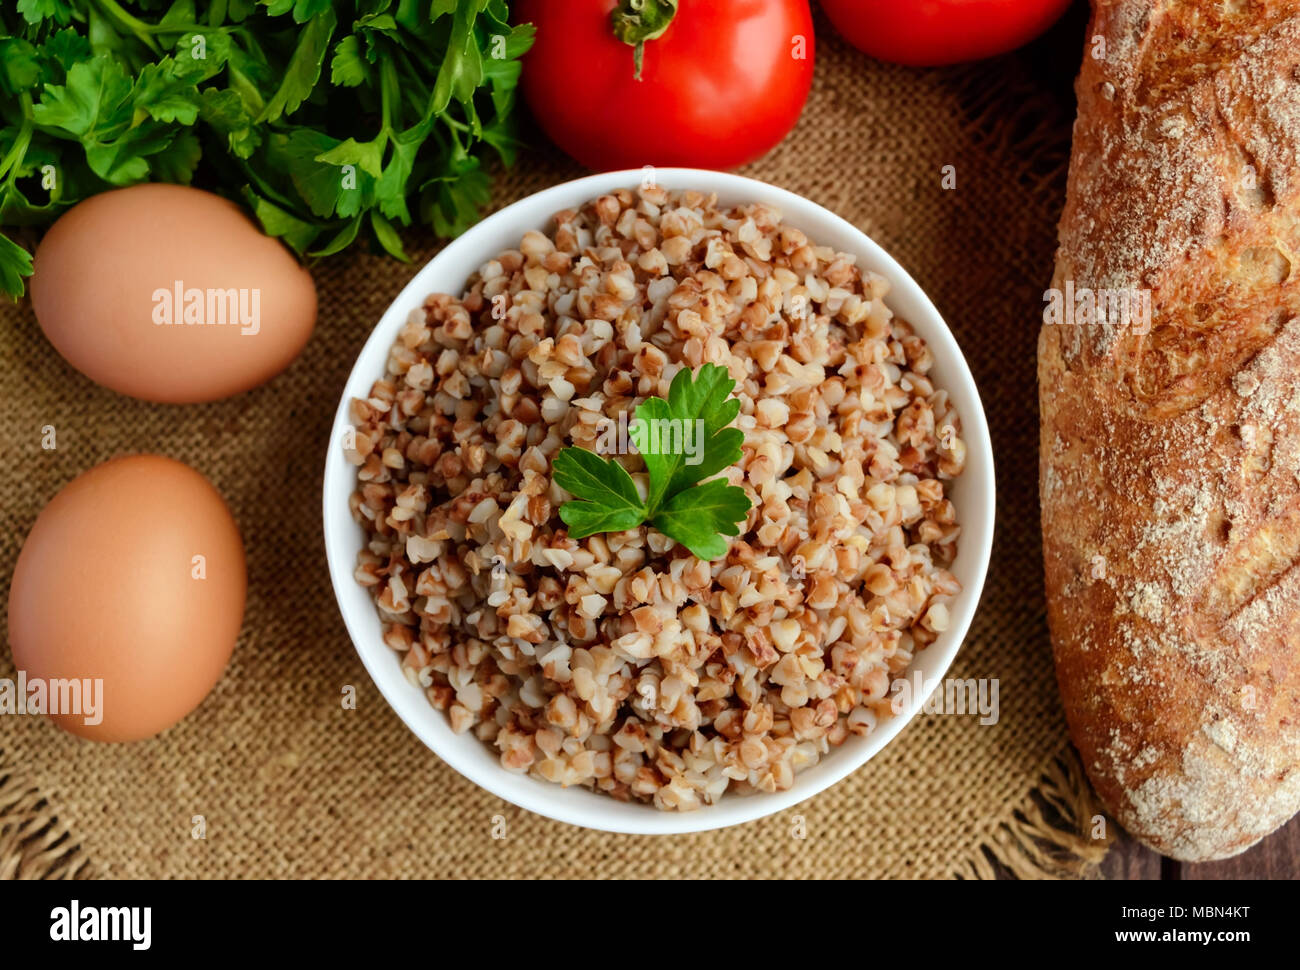 Buckwheat porridge in white bowl. Dietary dish. Vegan. top view - Stock Image